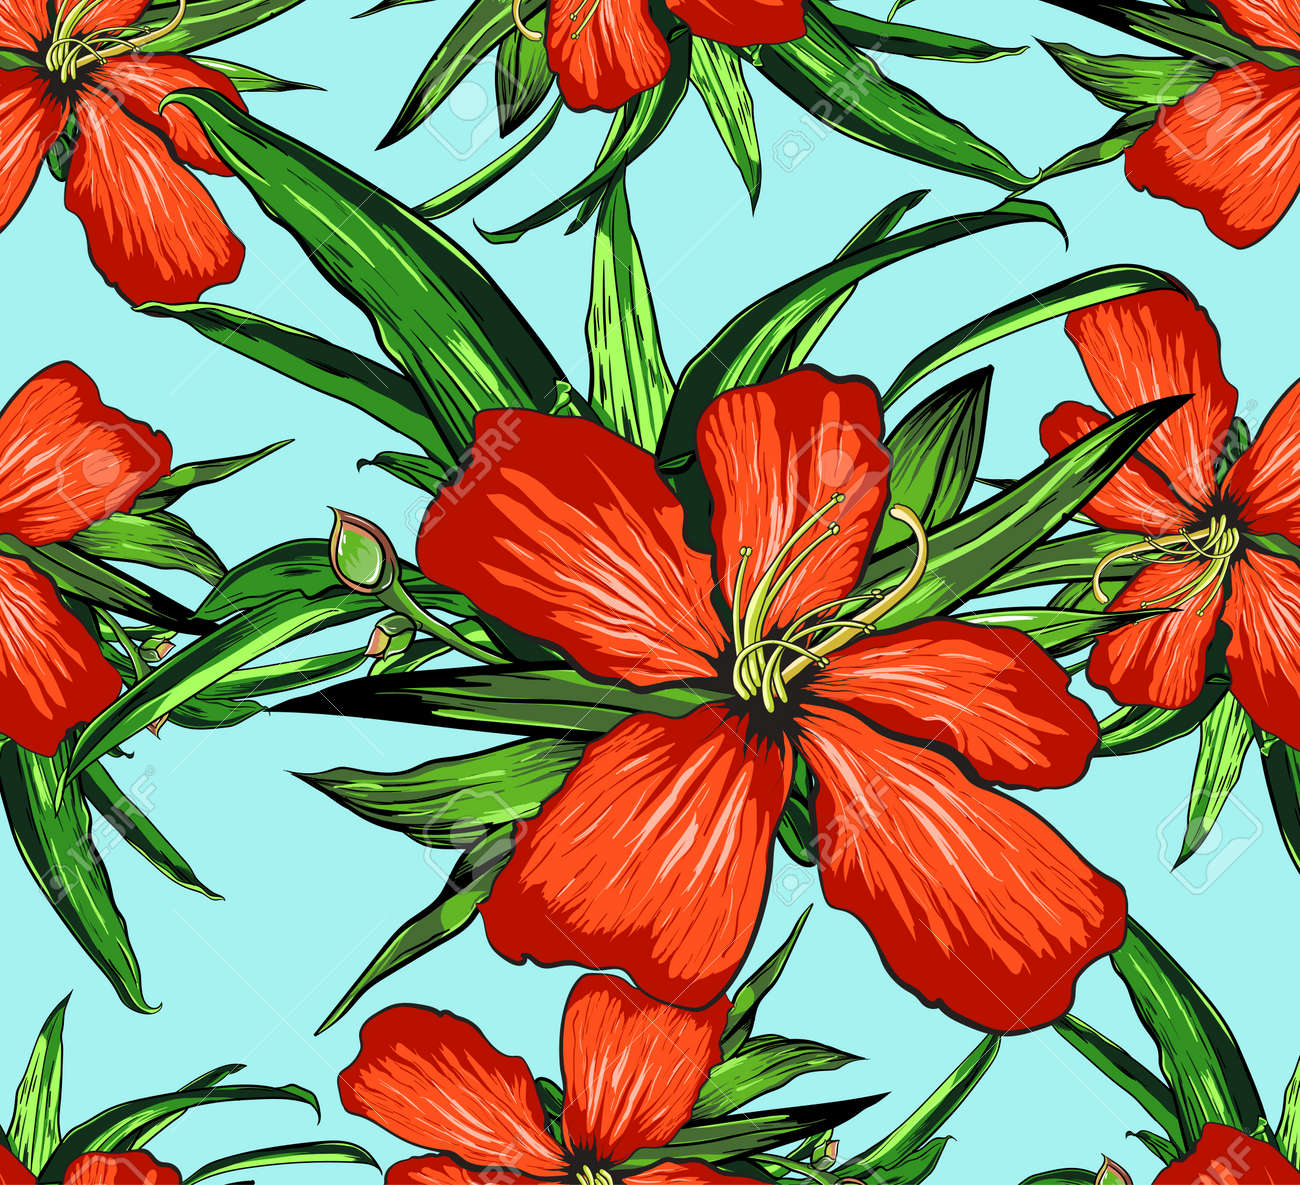 Tropical Flowers on a Background - Vintage Seamless Pattern - in vector. - 71497835